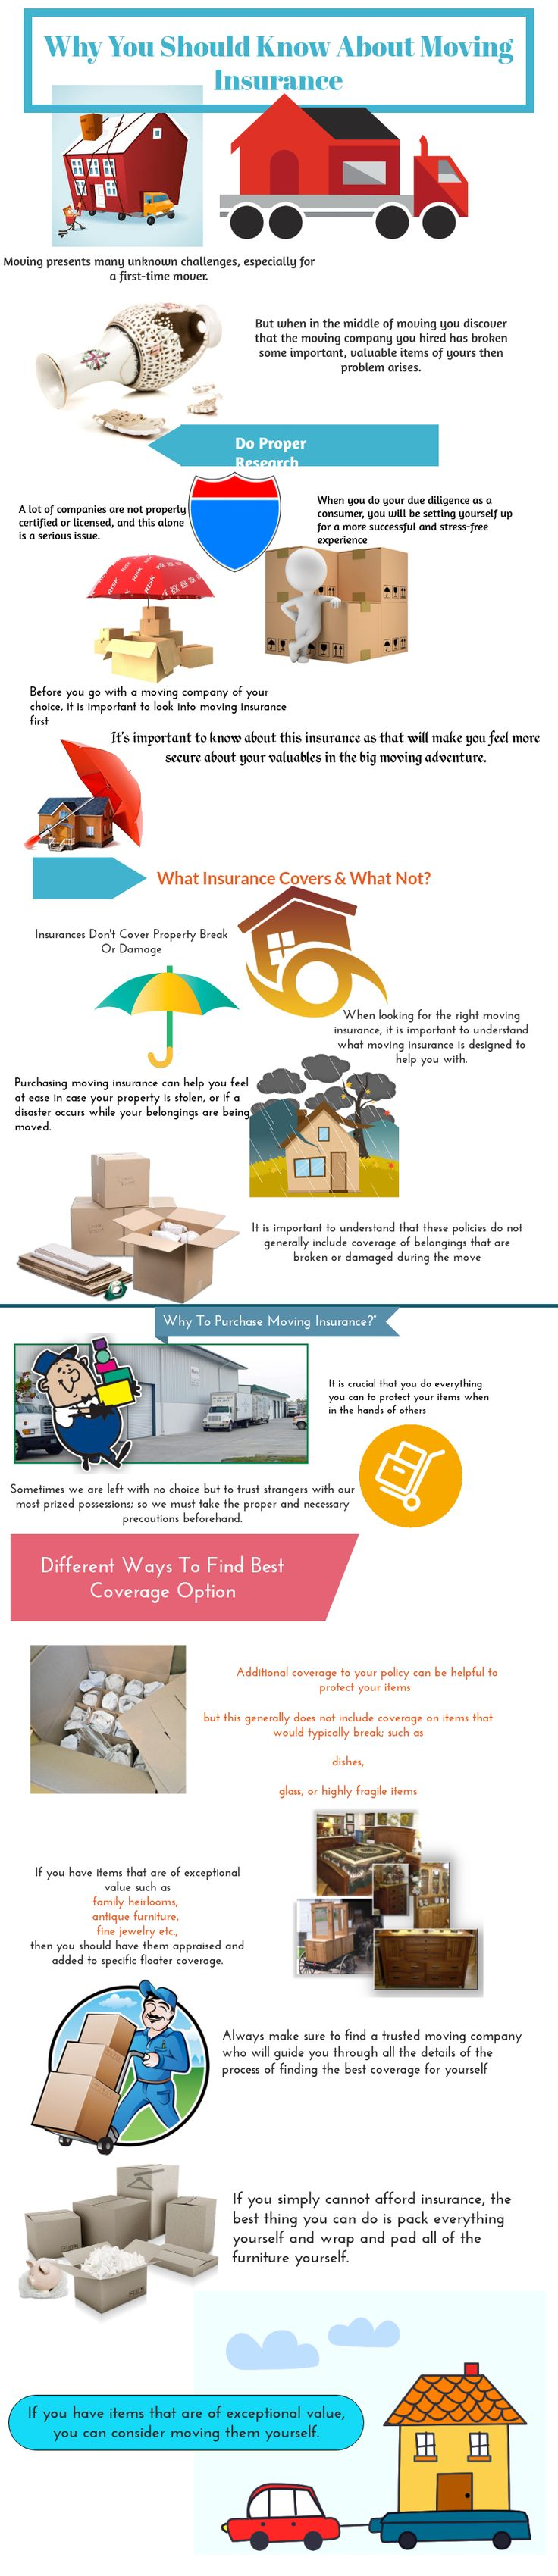 Before you go with a moving company of your choice, it's important to look into moving insurance first. It will make you feel more secured about your valuables. But, again, choosing the right kind of  insurance according to your belongings and budget is a difficult task. Here's a beautiful infographics that will let you know everything you need to know about moving insurance and how to choose the best coverage option for you. Check it out. https://www.wearemovers.net/